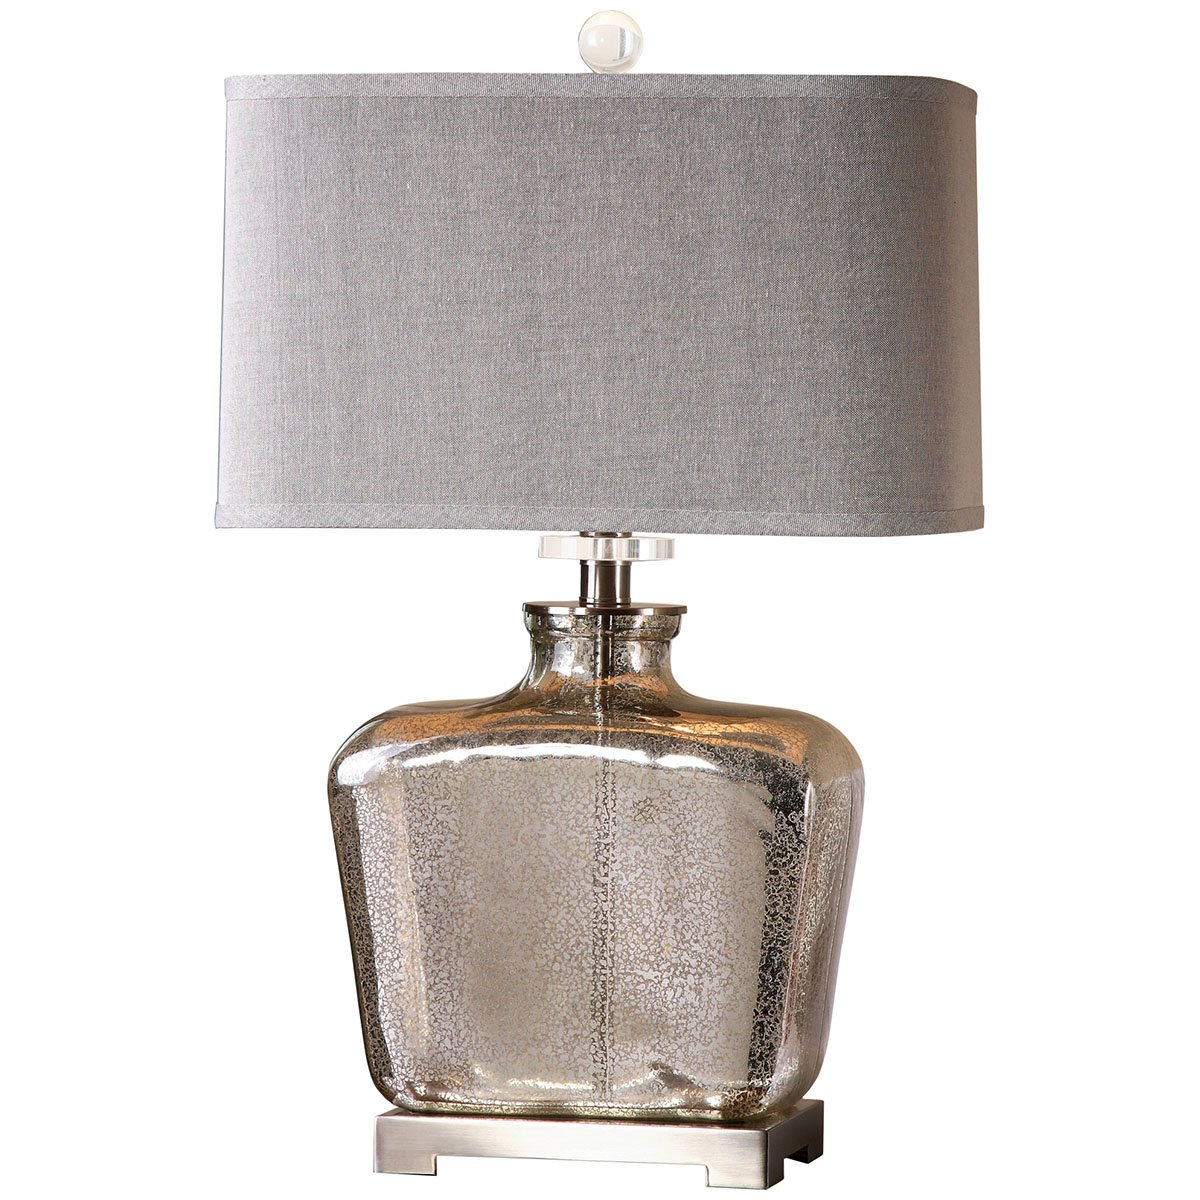 Amazoncom Uttermost 268511 Molinara Mercury Glass Table Lamp